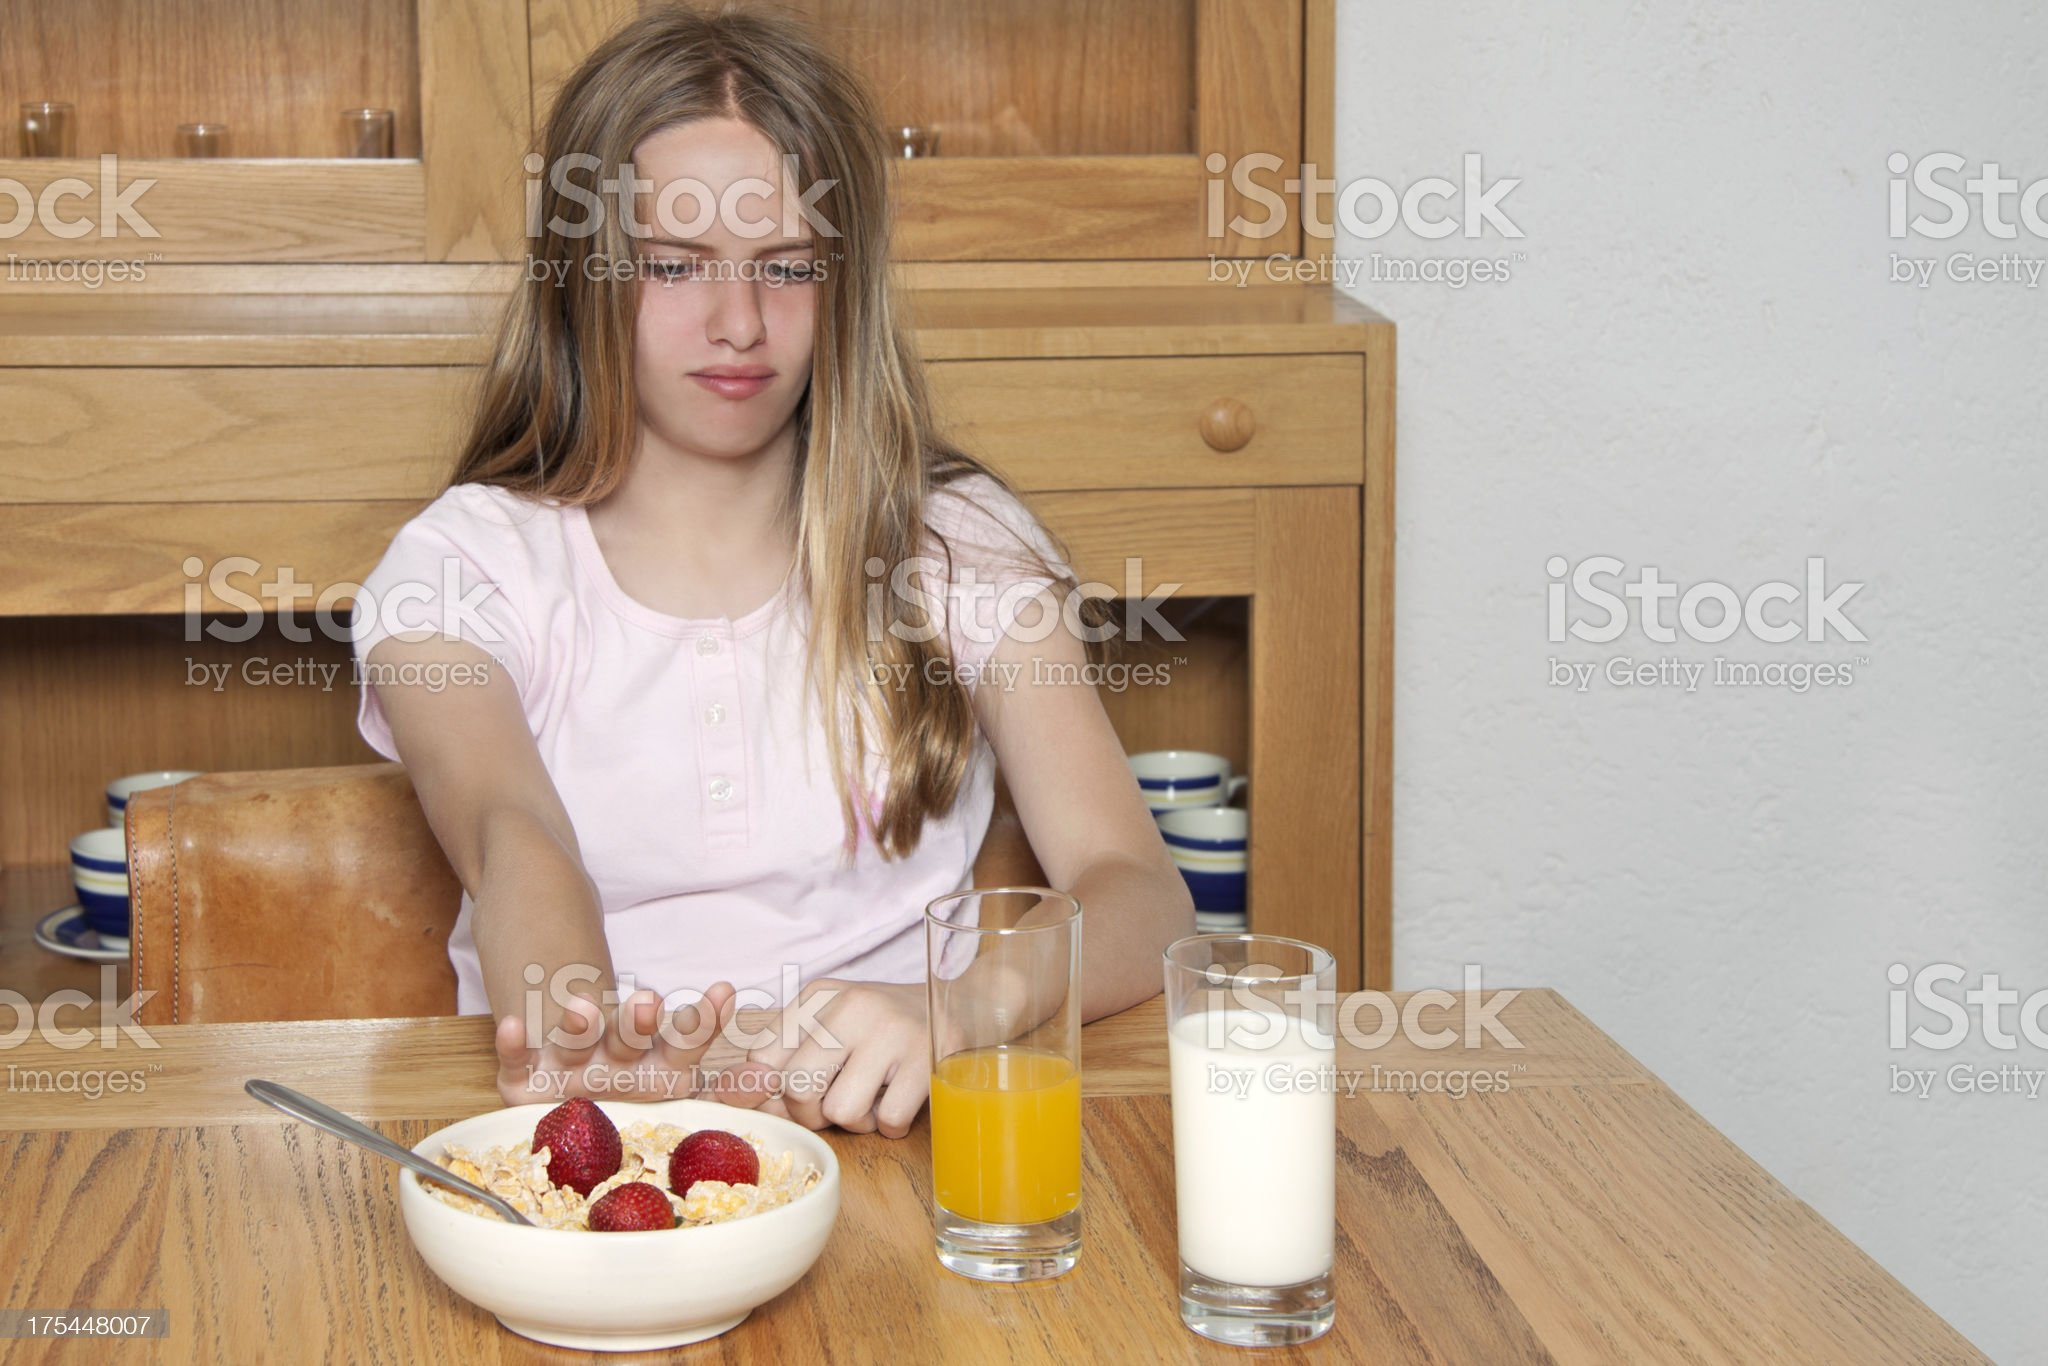 rejecting food royalty-free stock photo